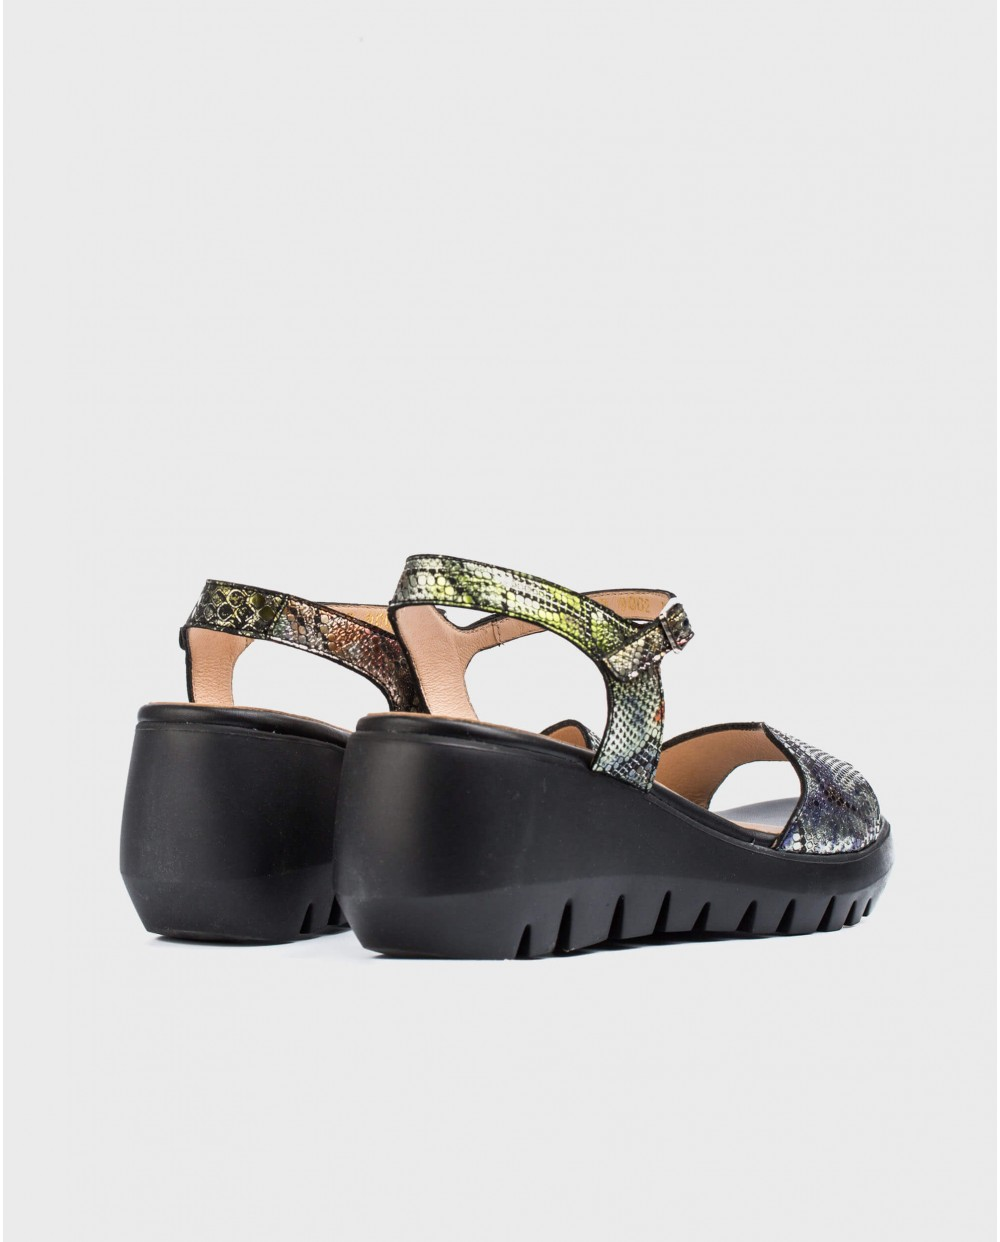 Wonders-Sandals-Scale effect leather wedge sandal